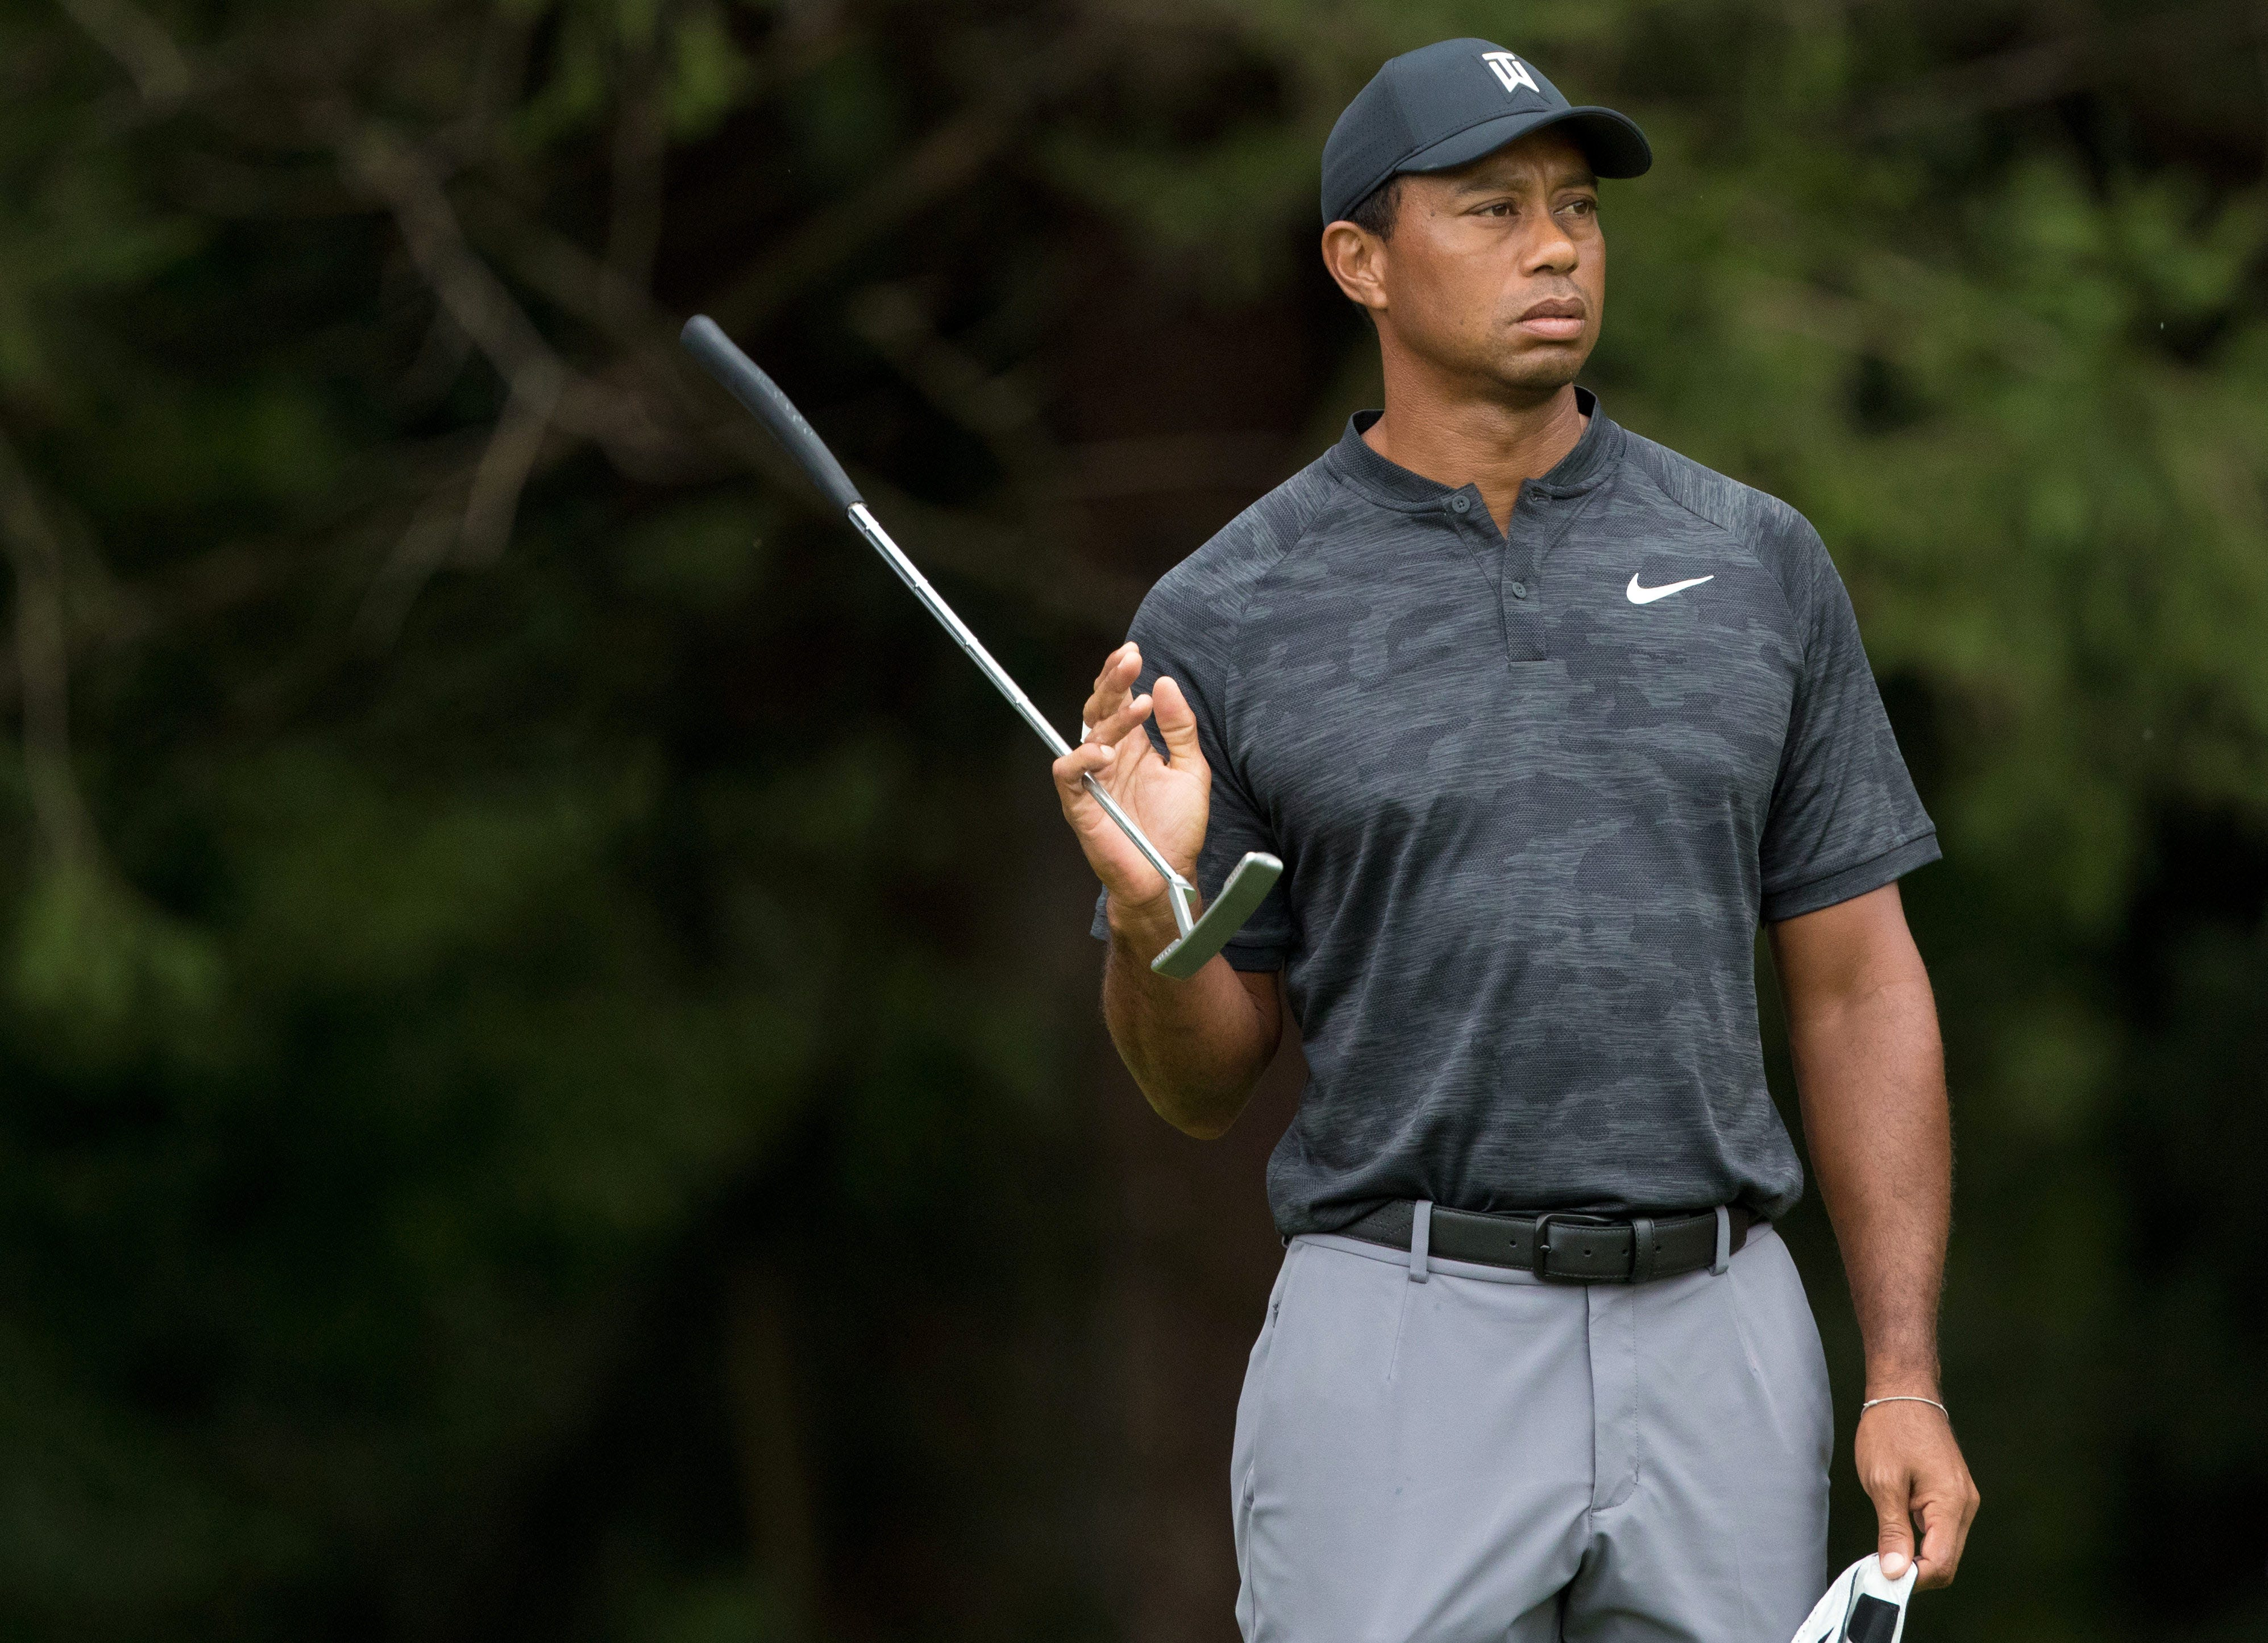 tiger woods unhappy with play at bmw championship  despite